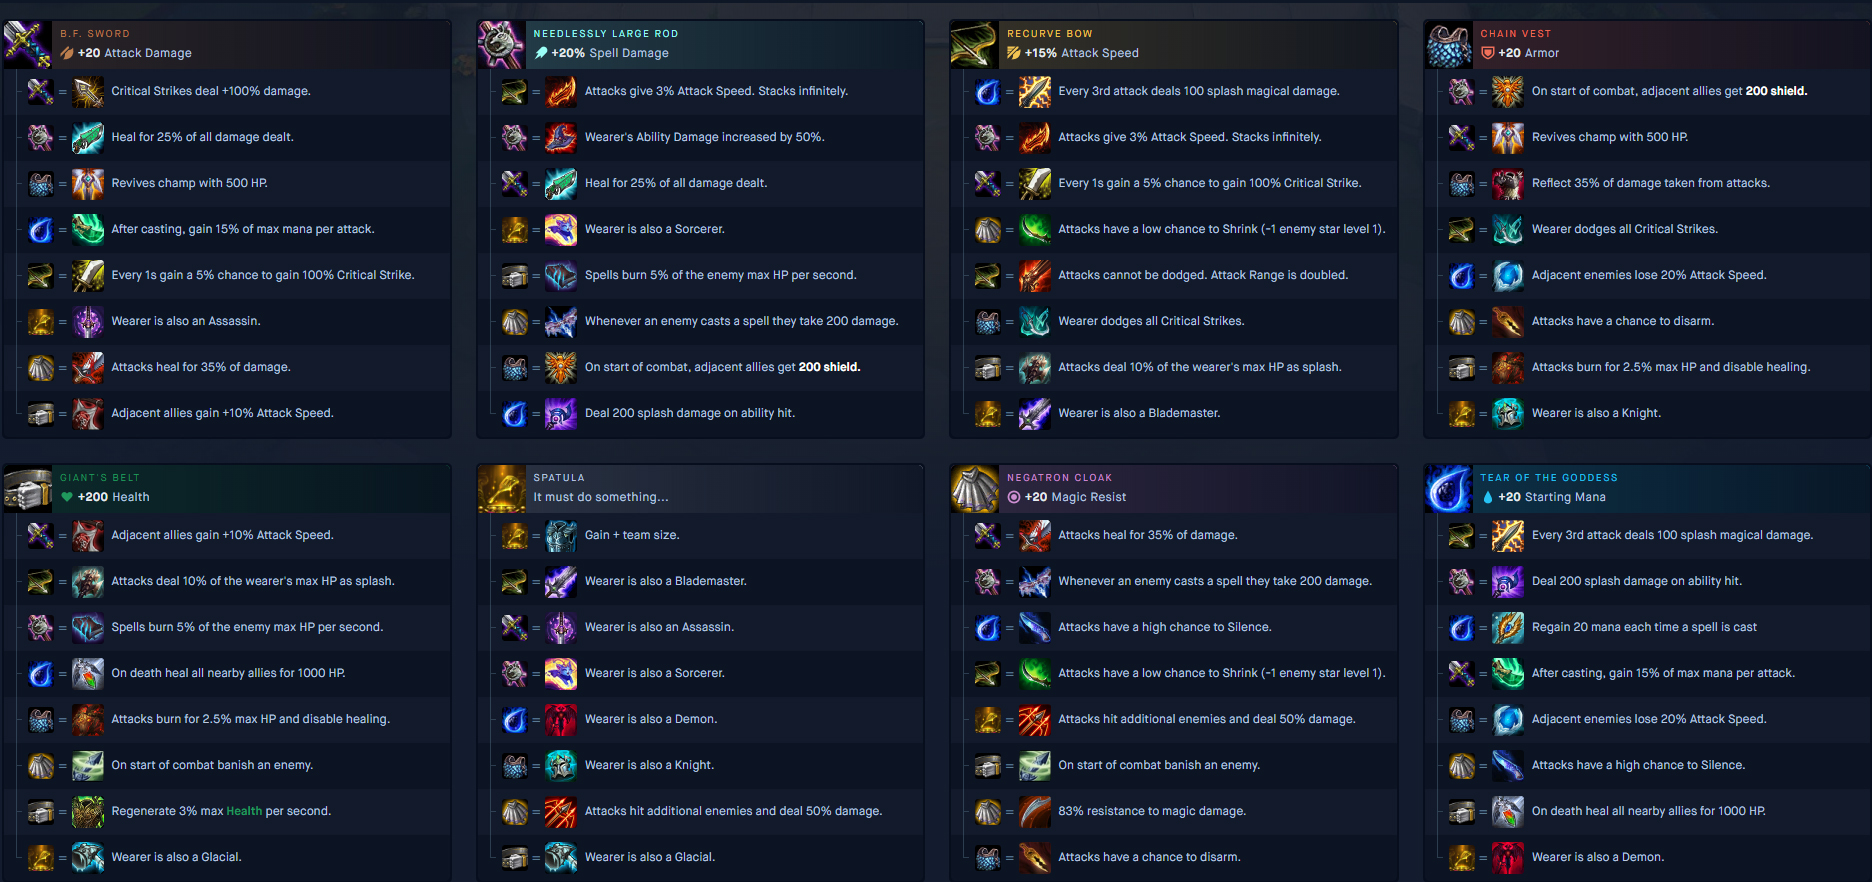 Teamfight Tactics (TFT) Item Cheat Sheet Guide